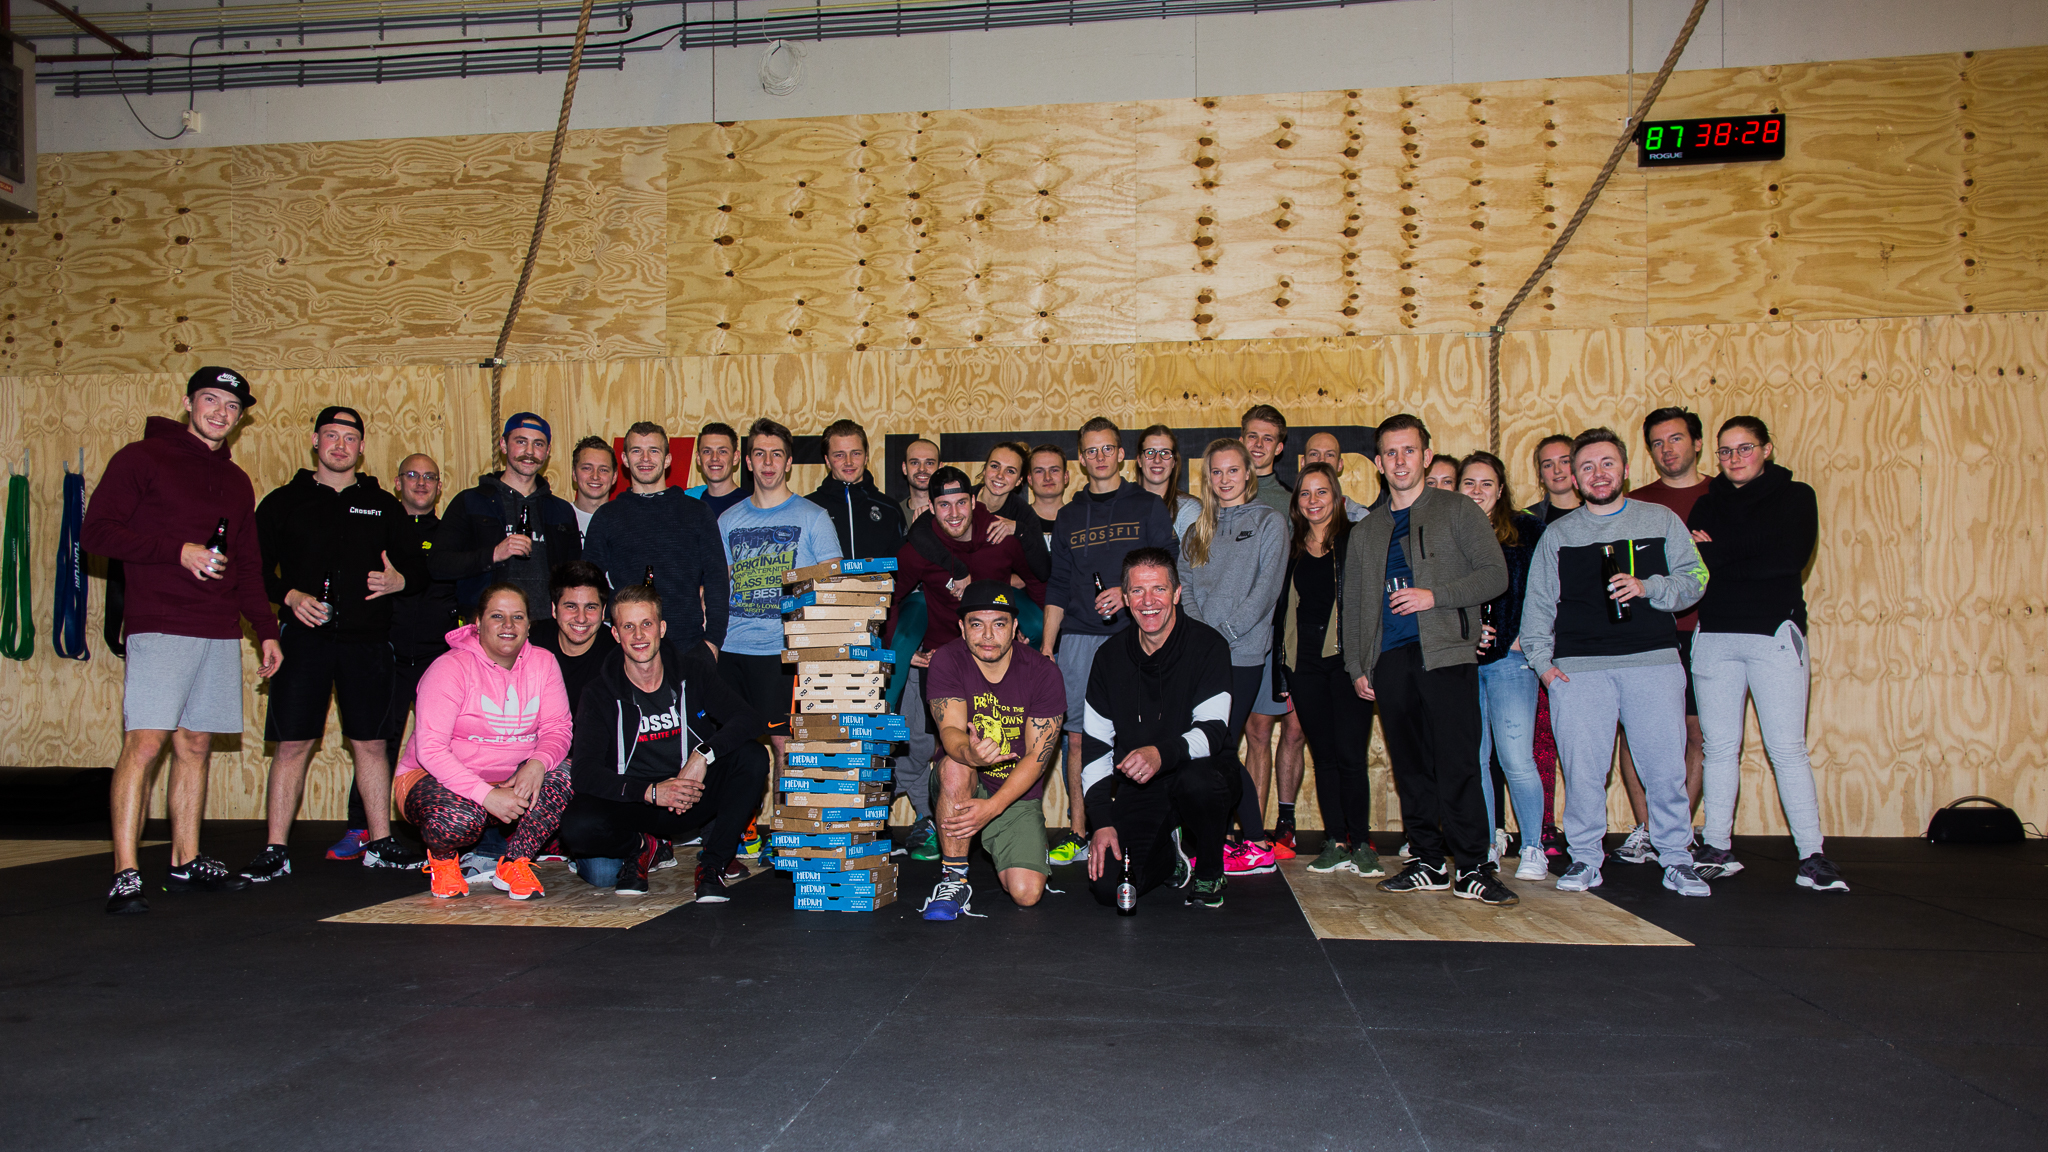 PIZZA WOD - Wildest! Fotografie